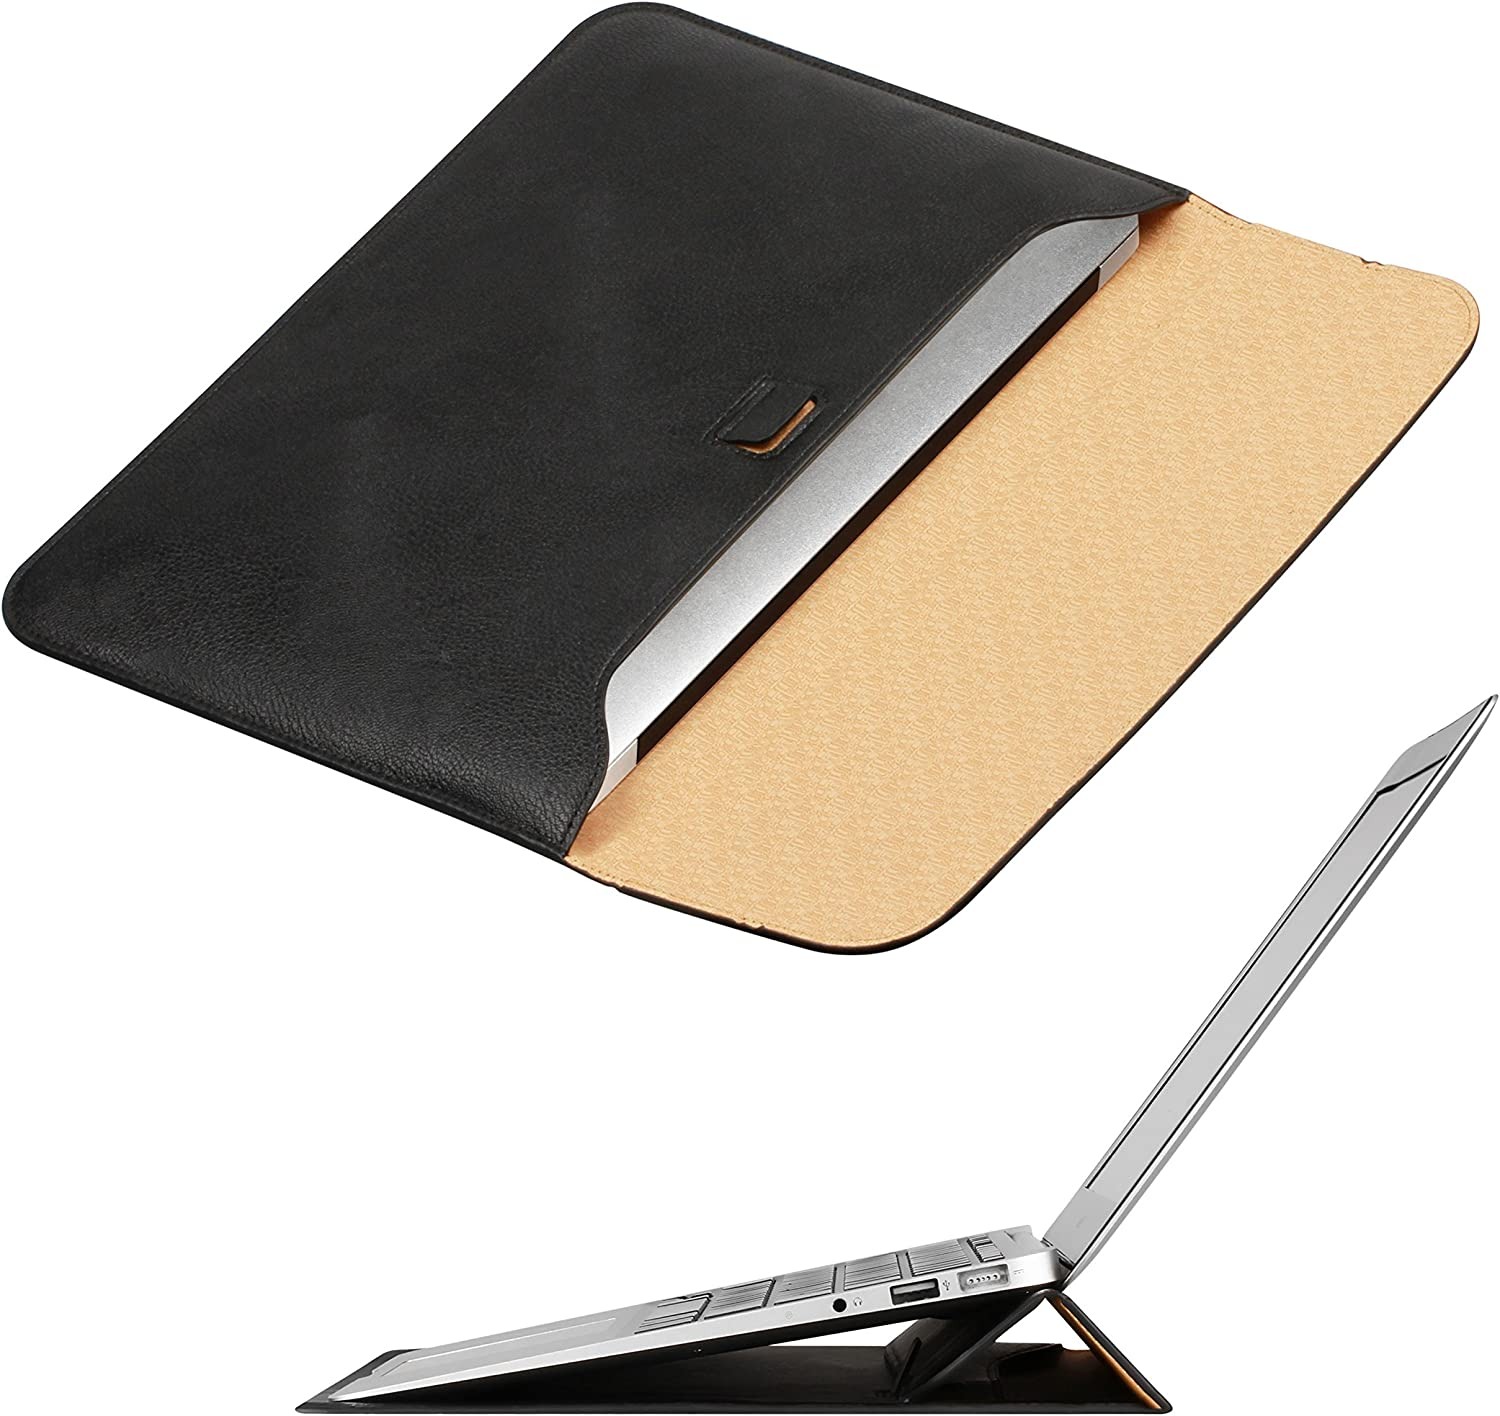 OMOTON Laptop Sleeve with Stand Function, Slim Carrying Bag Compatible 2018/2019 New MacBook Air 13 inch, Black